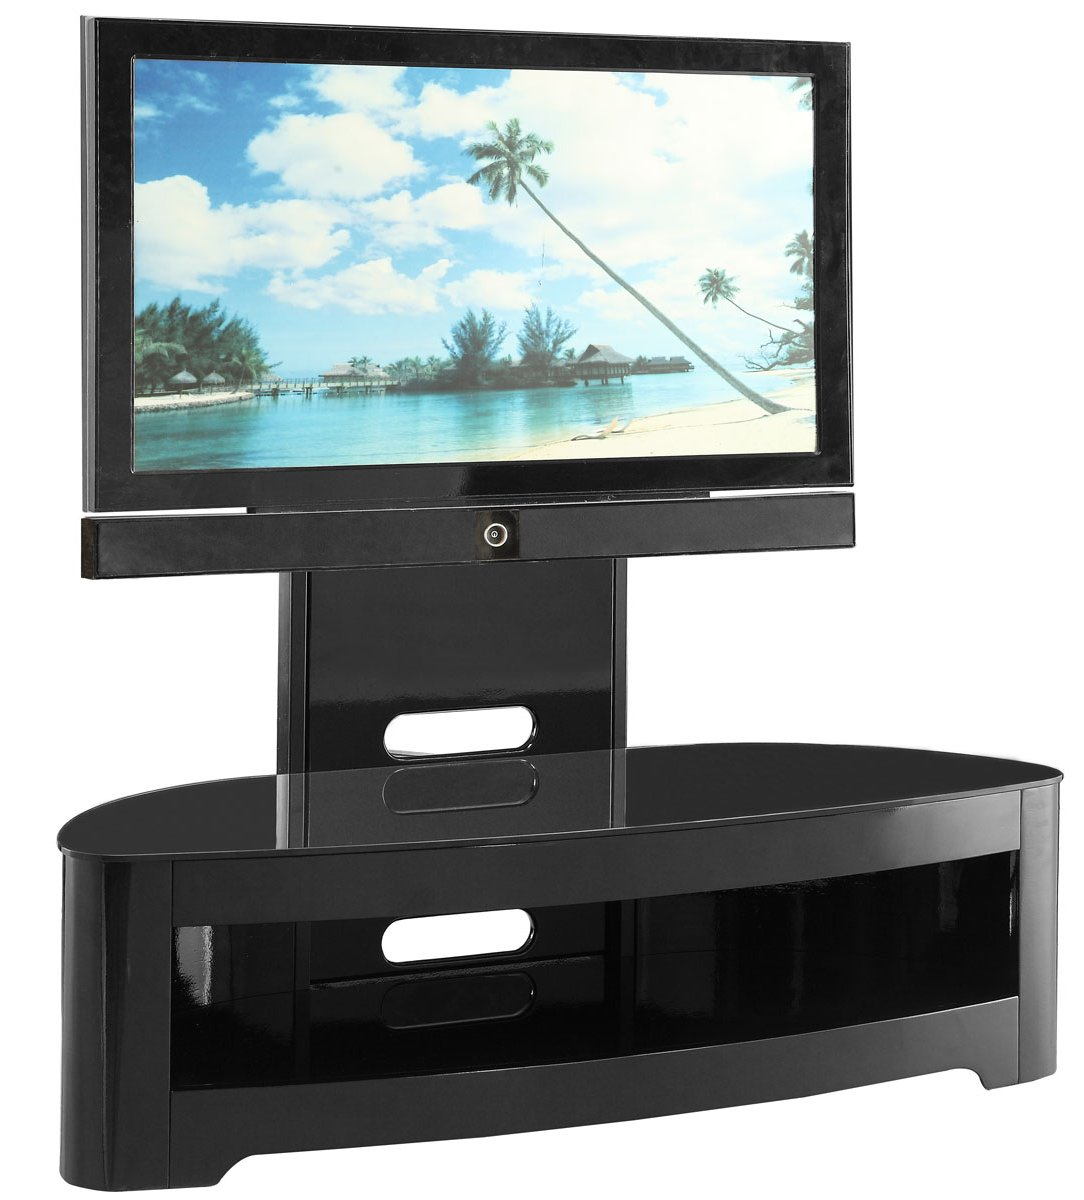 Jual Stand Tv Led : Jual Jf Hgb Tv Stands